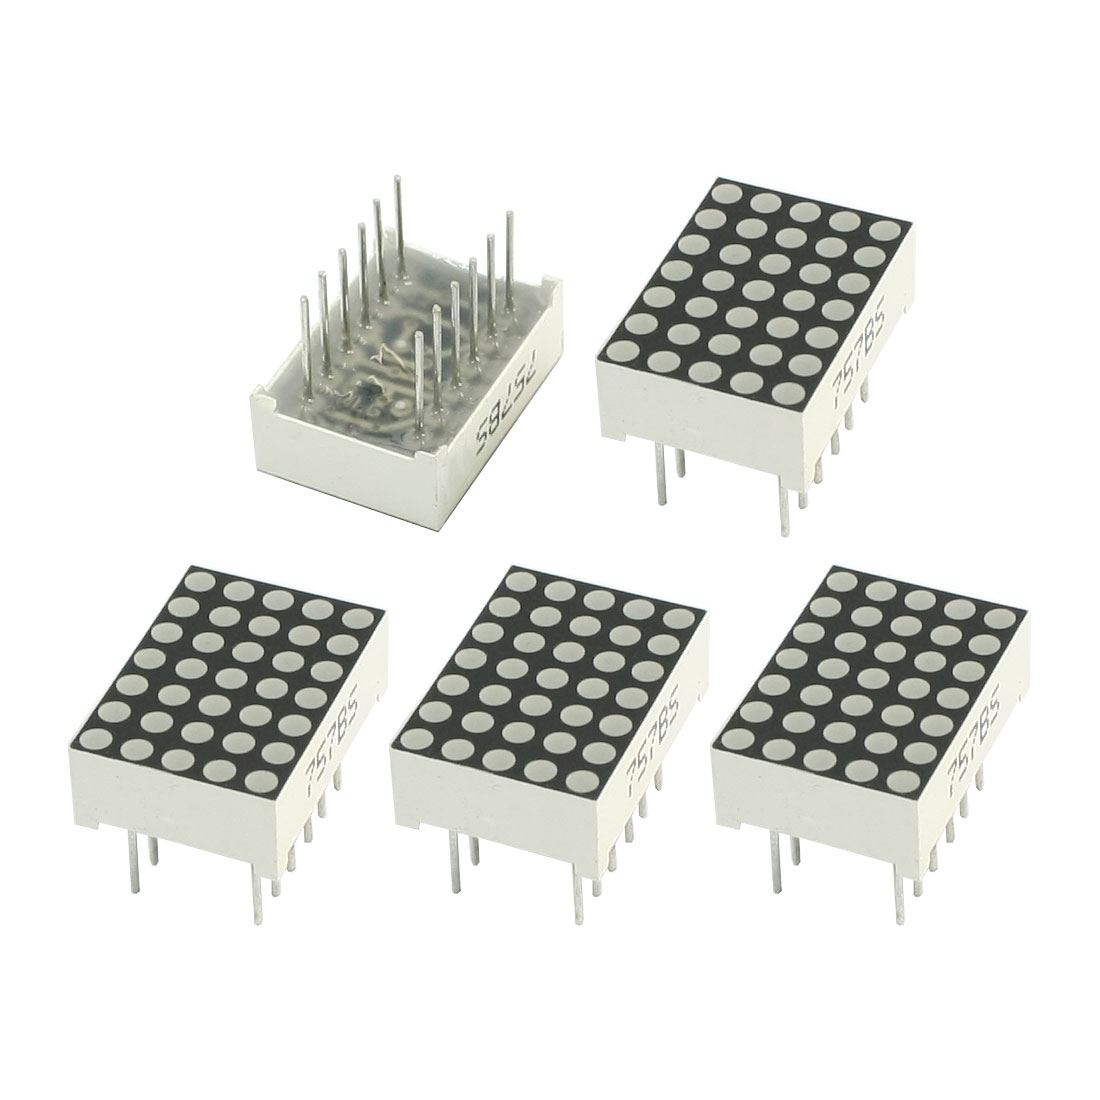 5pcs Lattice 7x5 Dots 12Pin Common Anode Red LED Digital Display